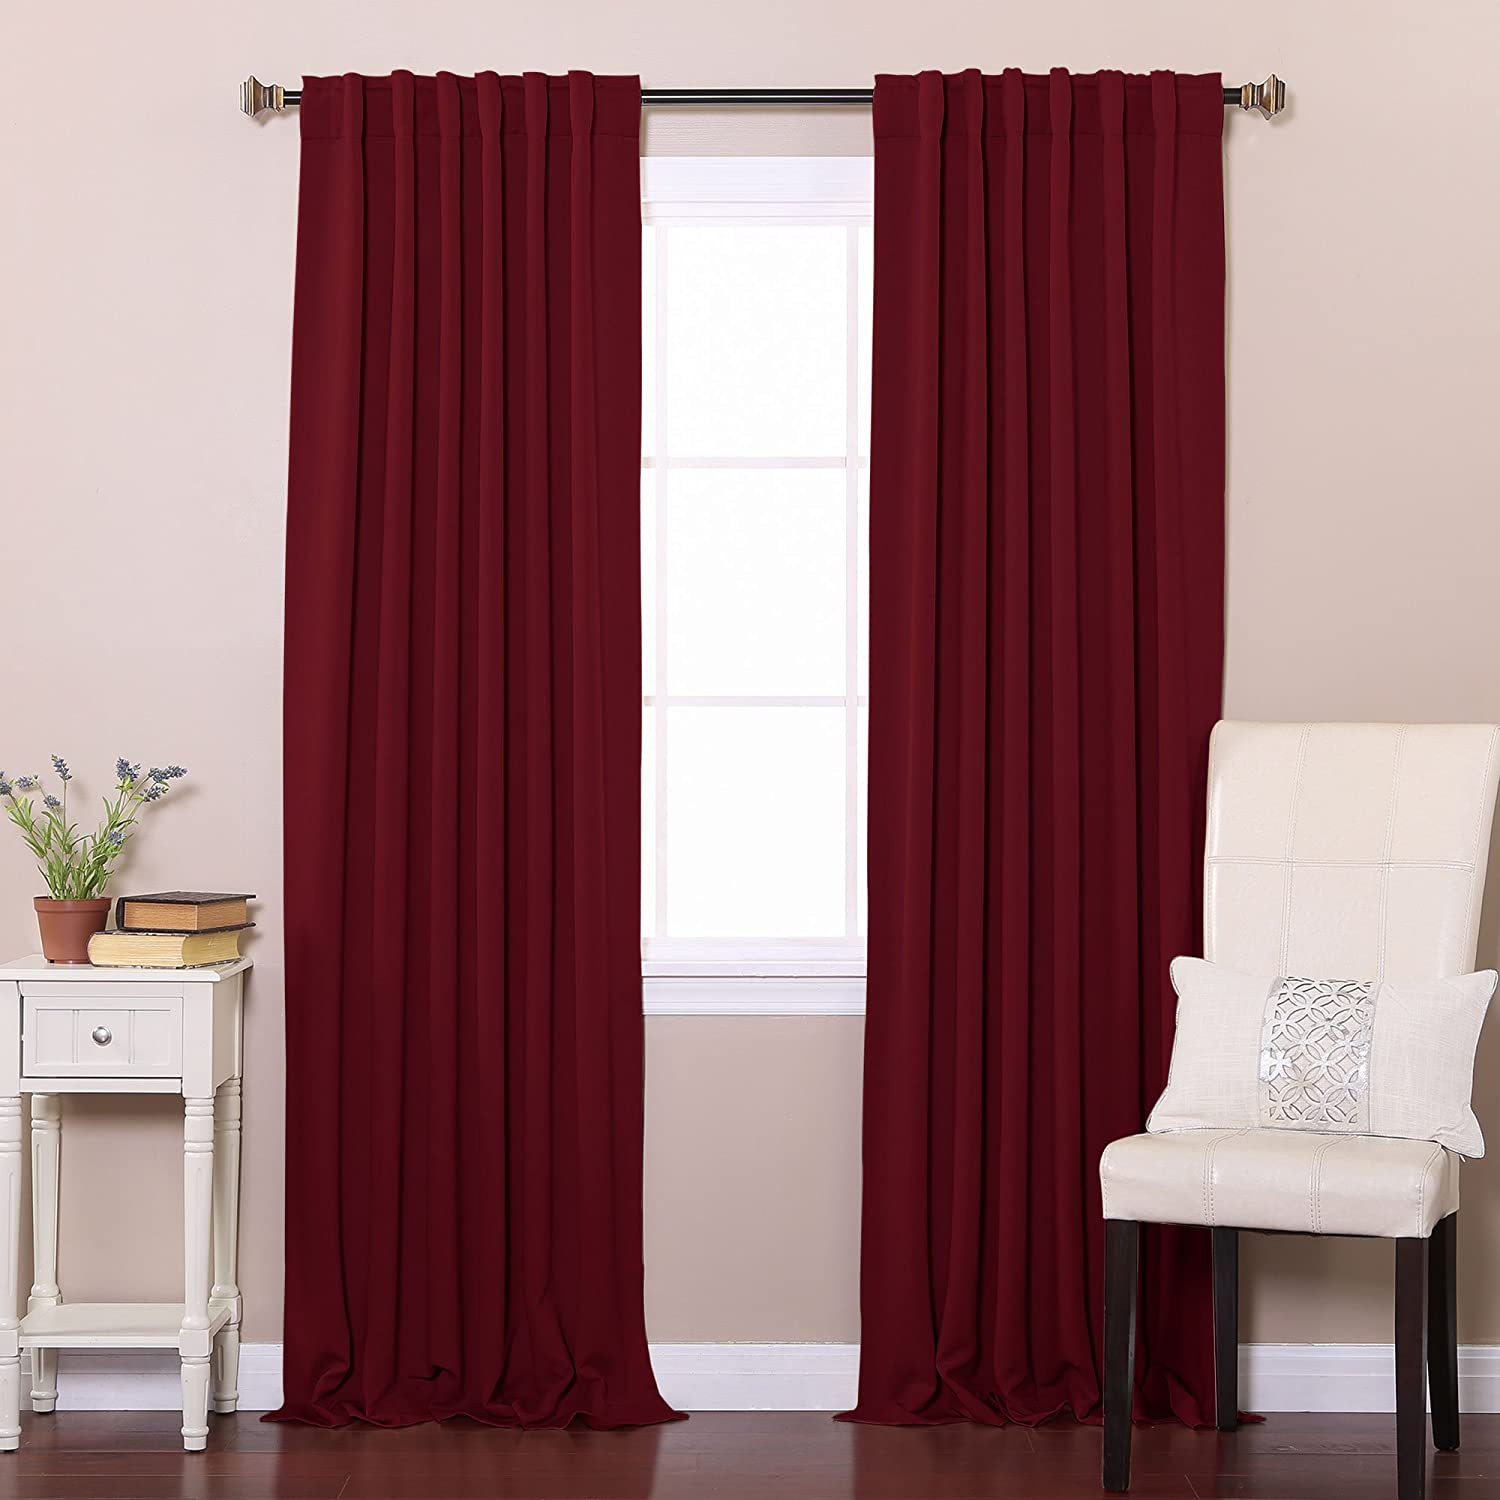 curtains the white thermal lining lined by fabric blackout curtain amazon metre